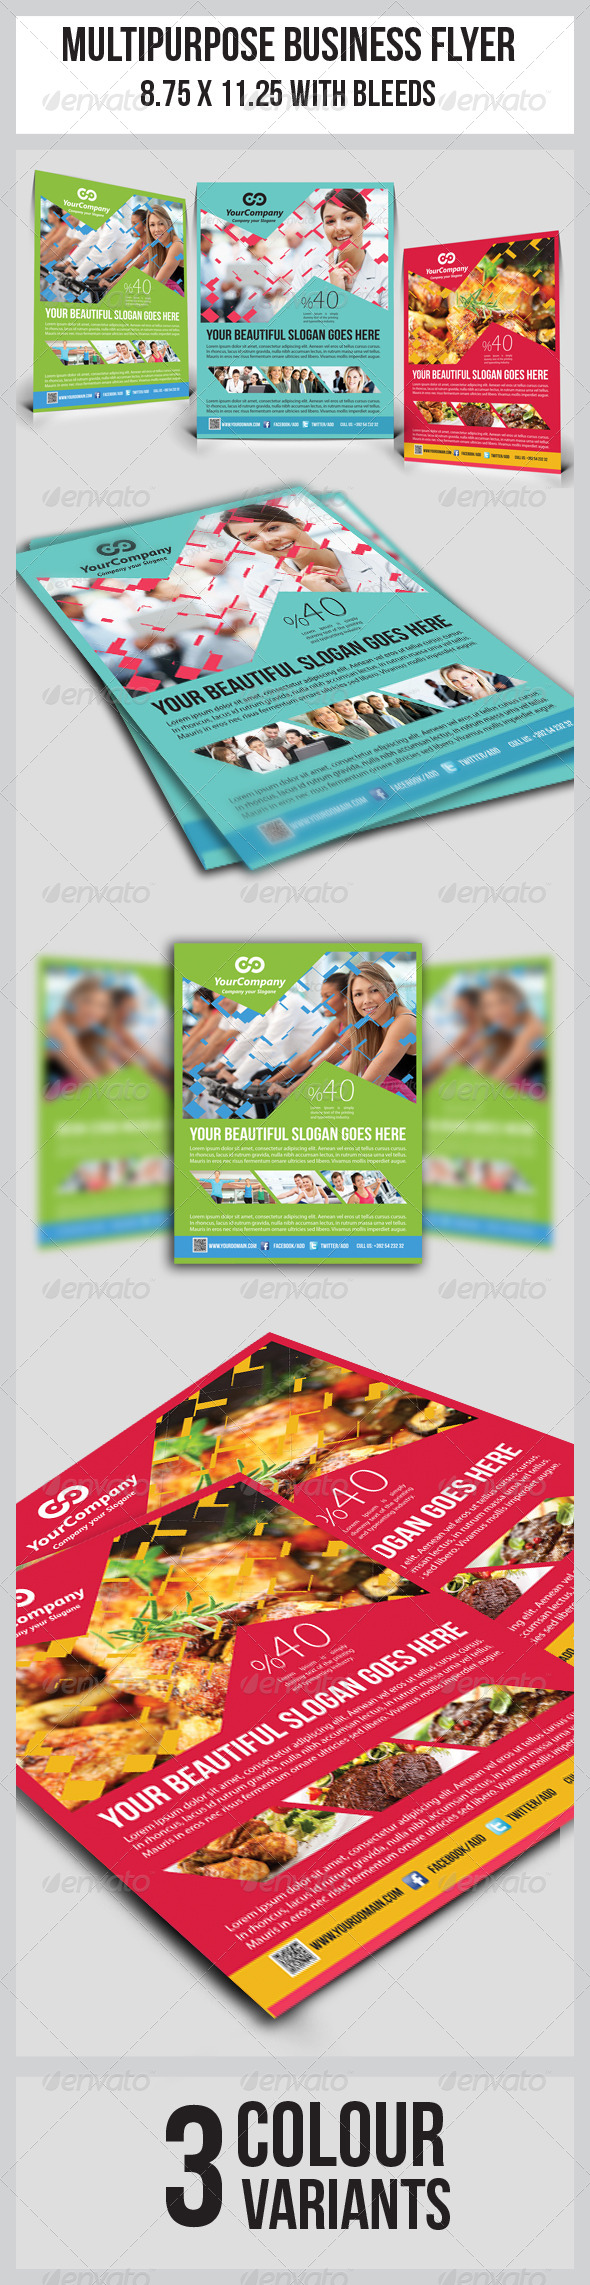 GraphicRiver Multipurpose Business Flyer 5062357